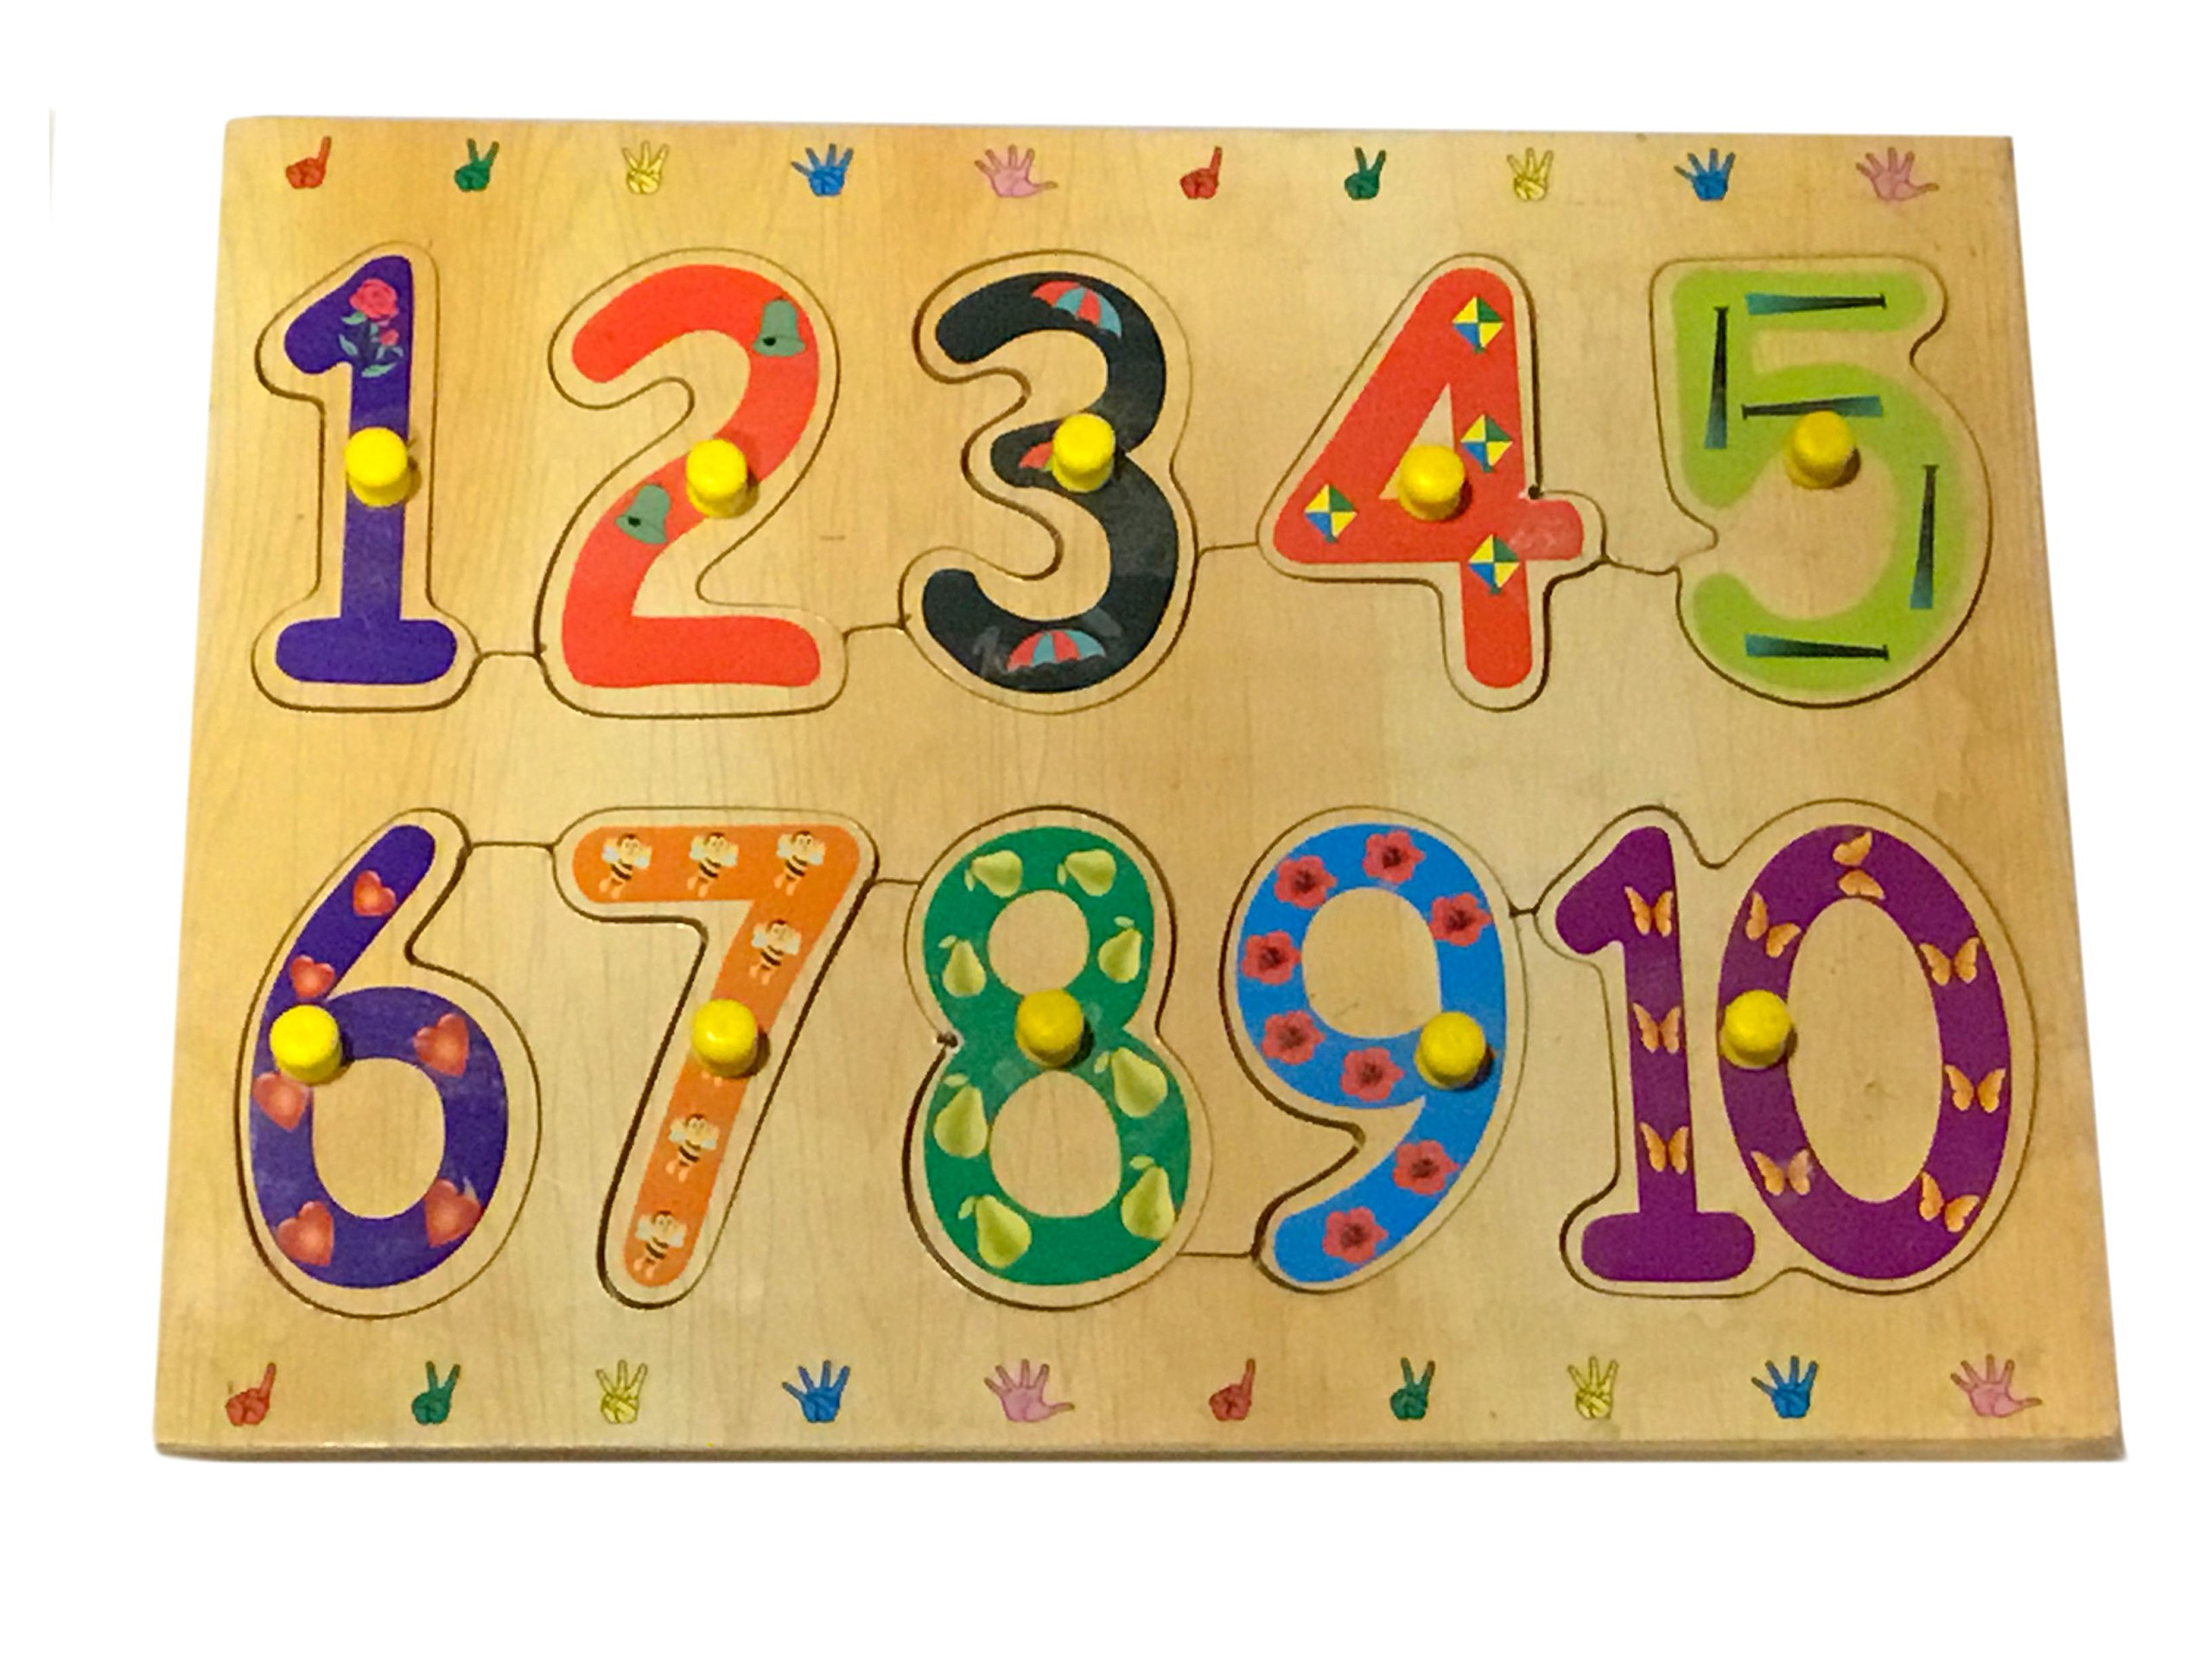 Mojopanda Wooden 1-10 Number Shape Tray with Knobs, Multi Color Peg Puzzle Educational Toy